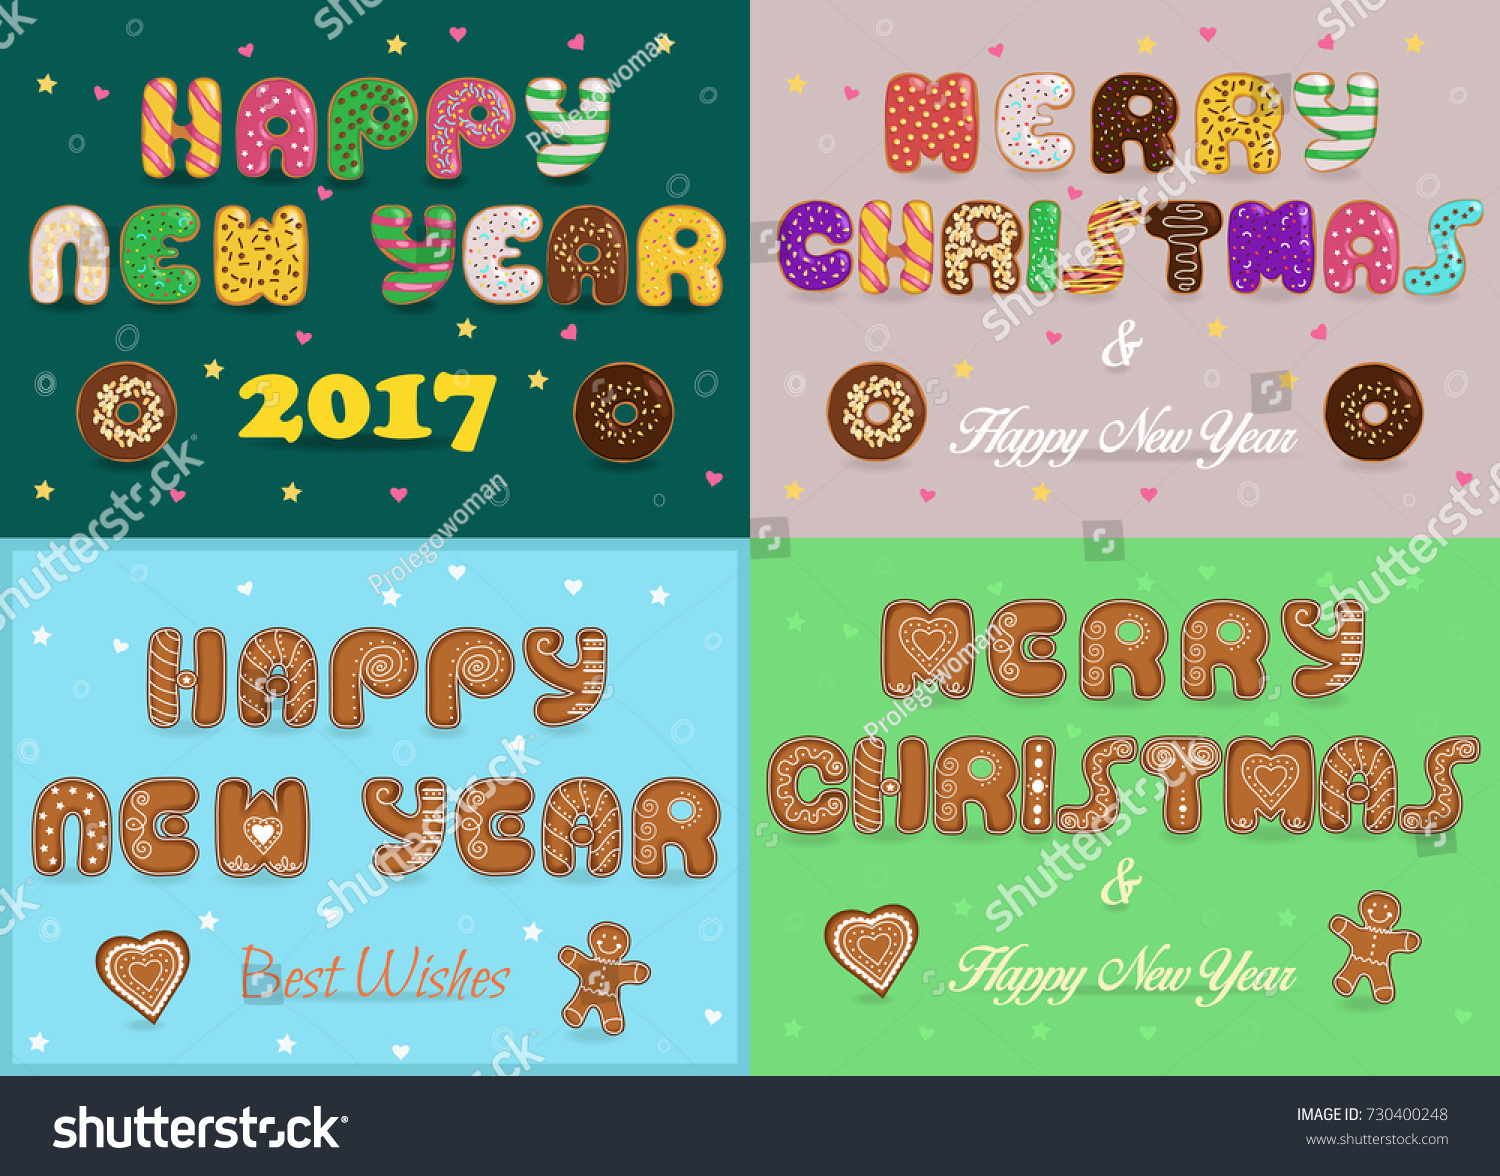 Greeting Christmas New Year Cards Artistic Stock Illustration